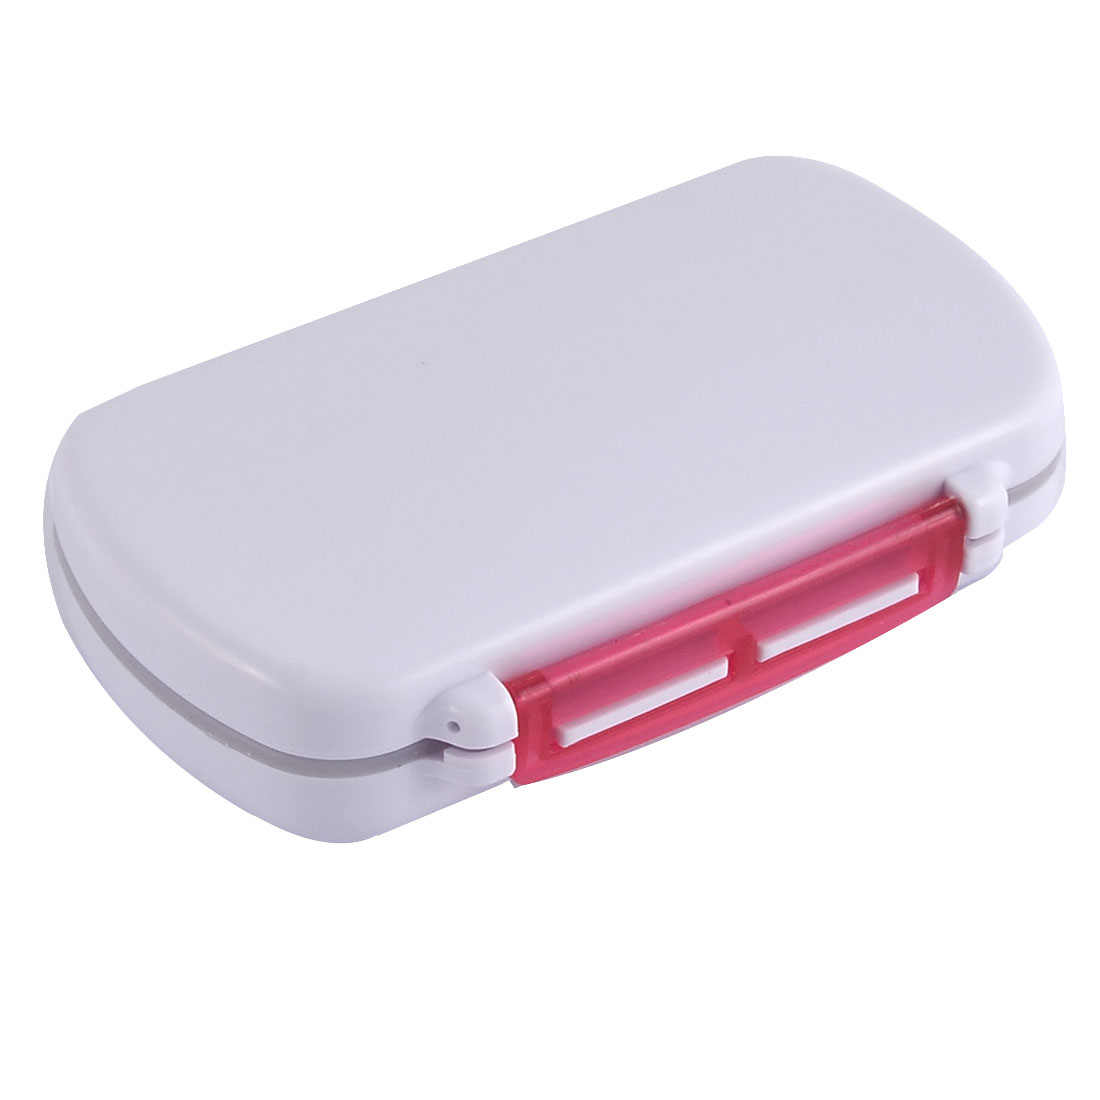 Plastic 6 Compartments Medicine Pills Coins Jewelry Storage Box Case Clear Red